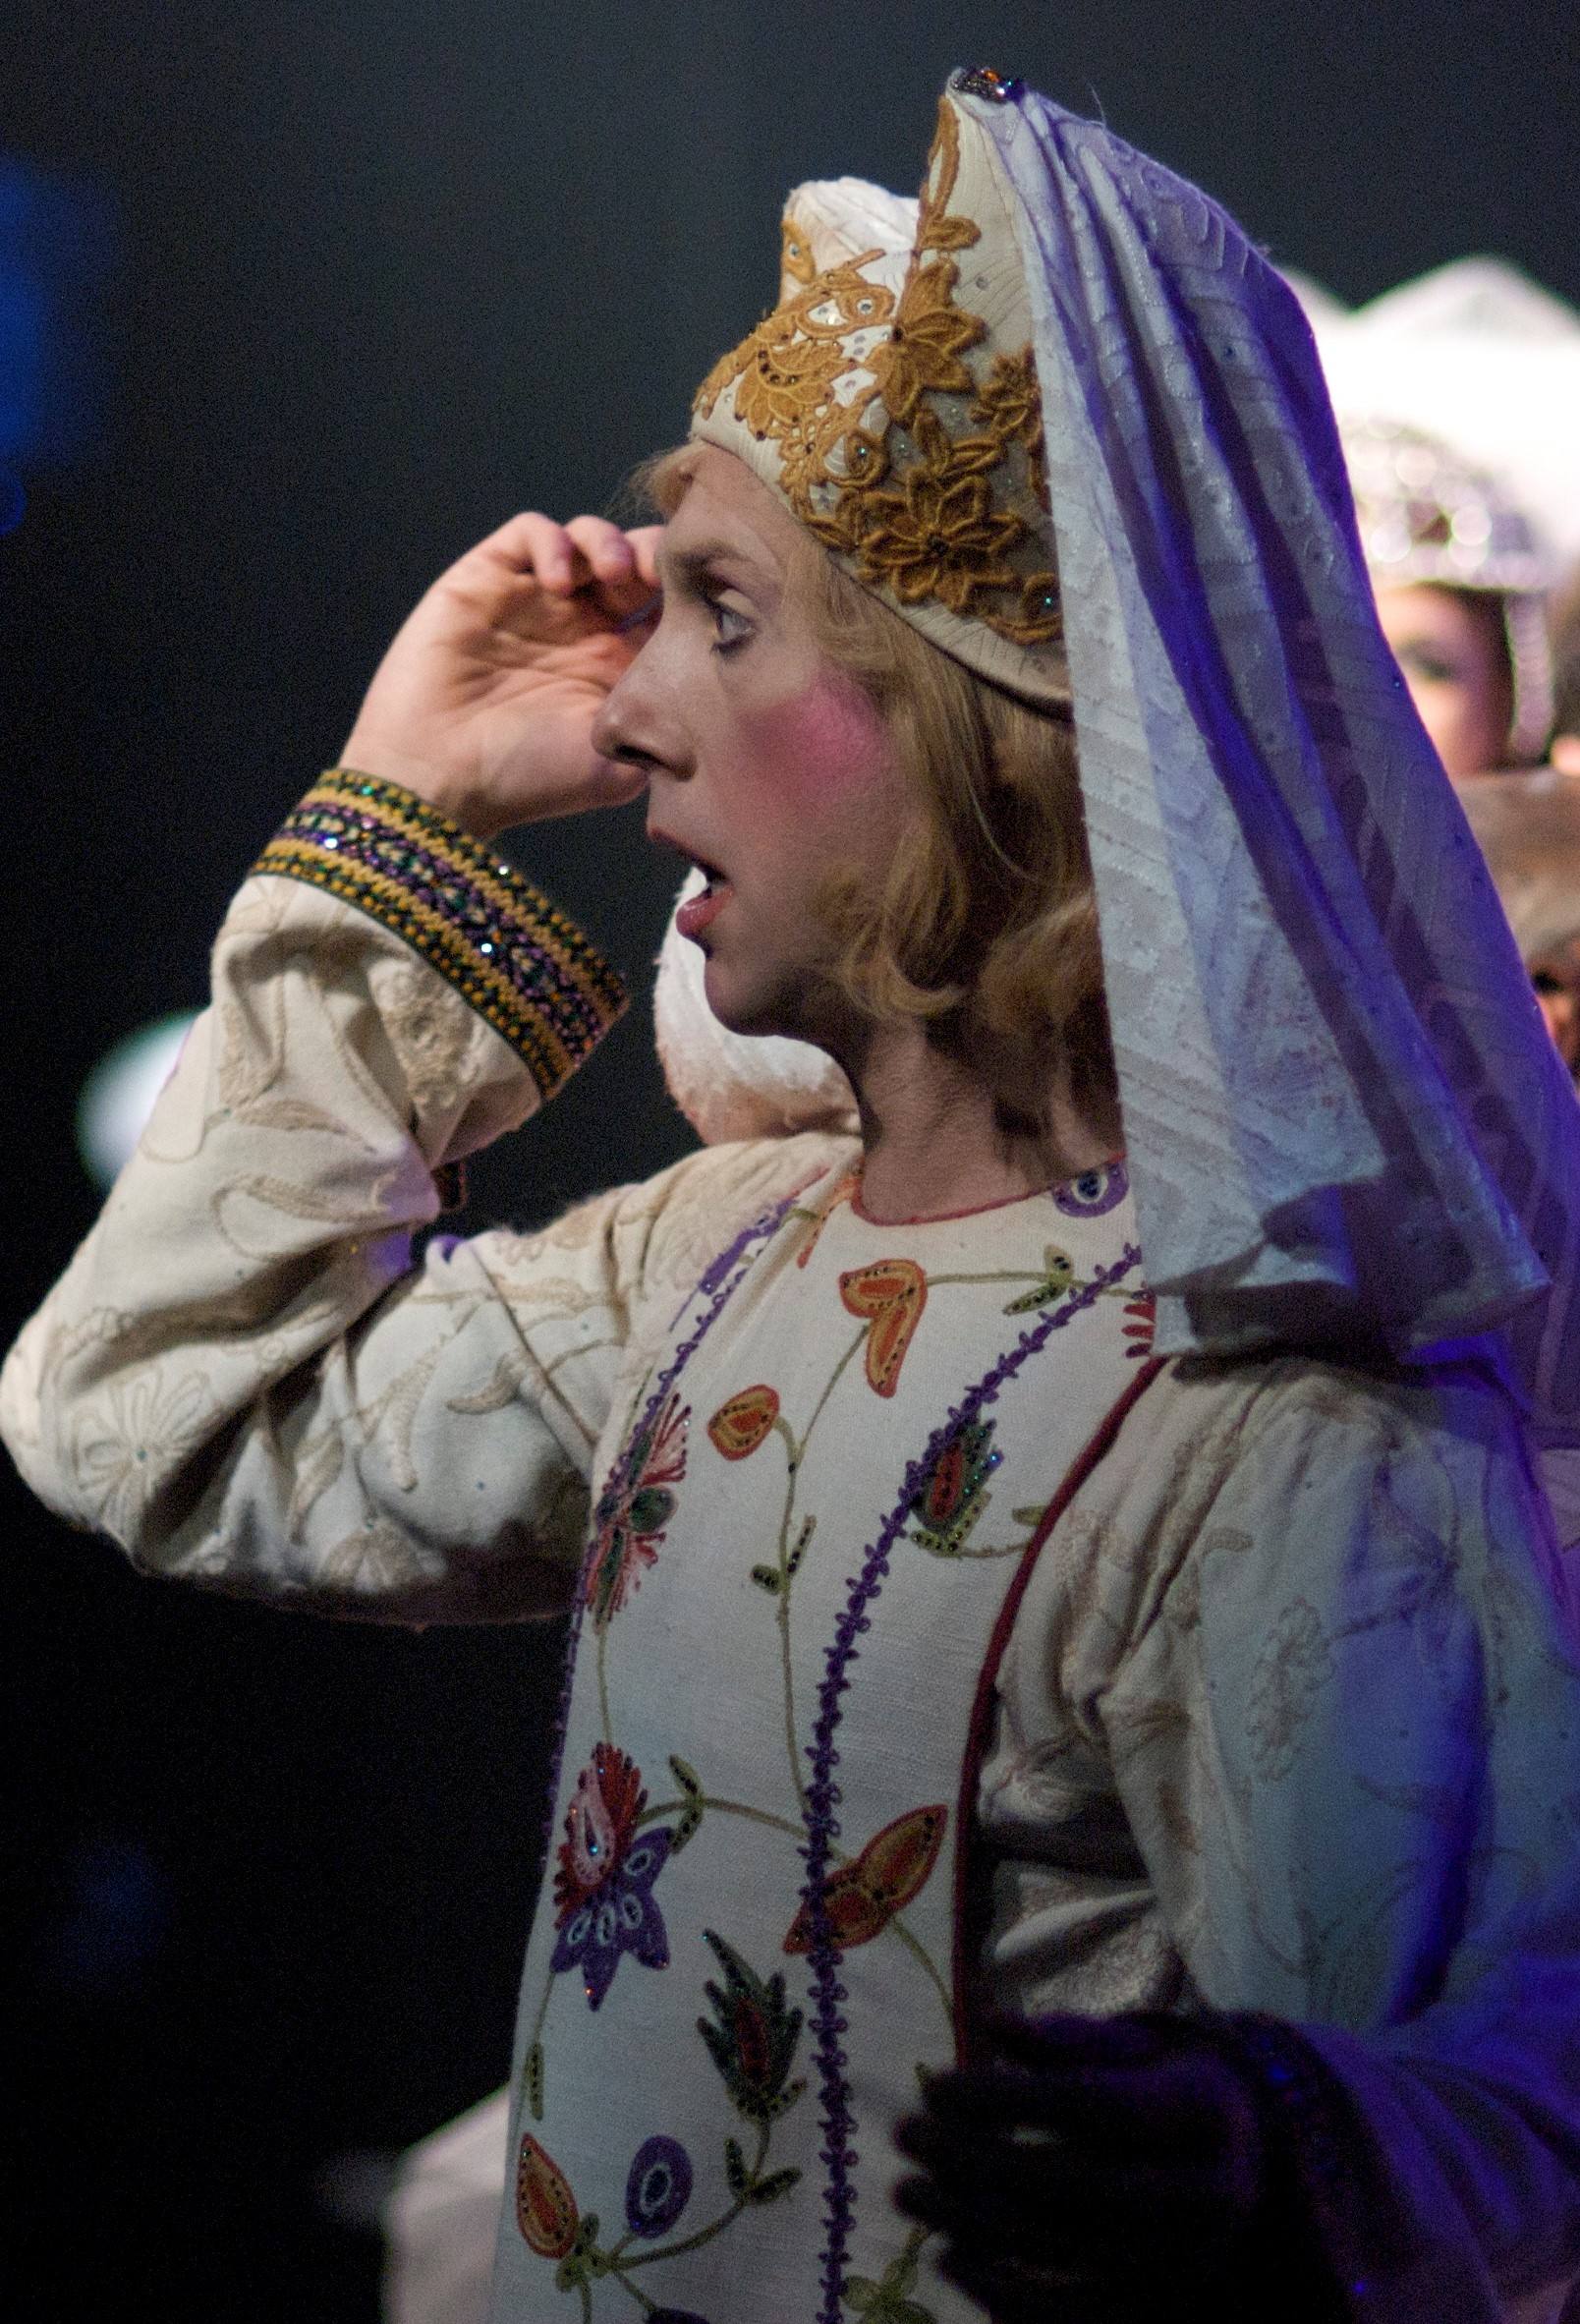 As Prince Herbert in Monty Python's SPAMALOT